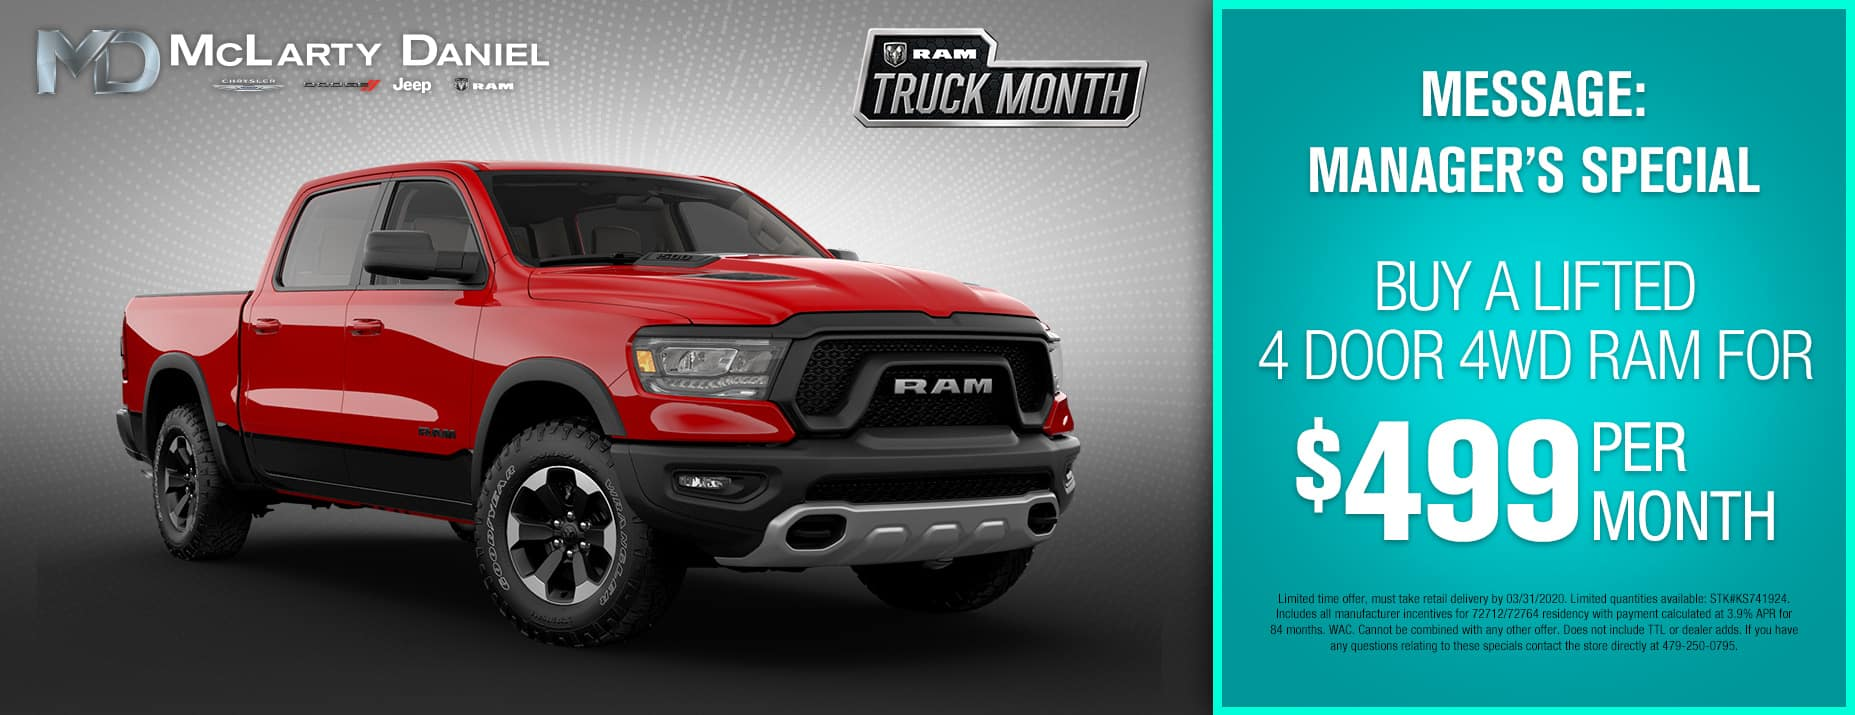 2019 Ram 1500 Buy For $499 Per Month